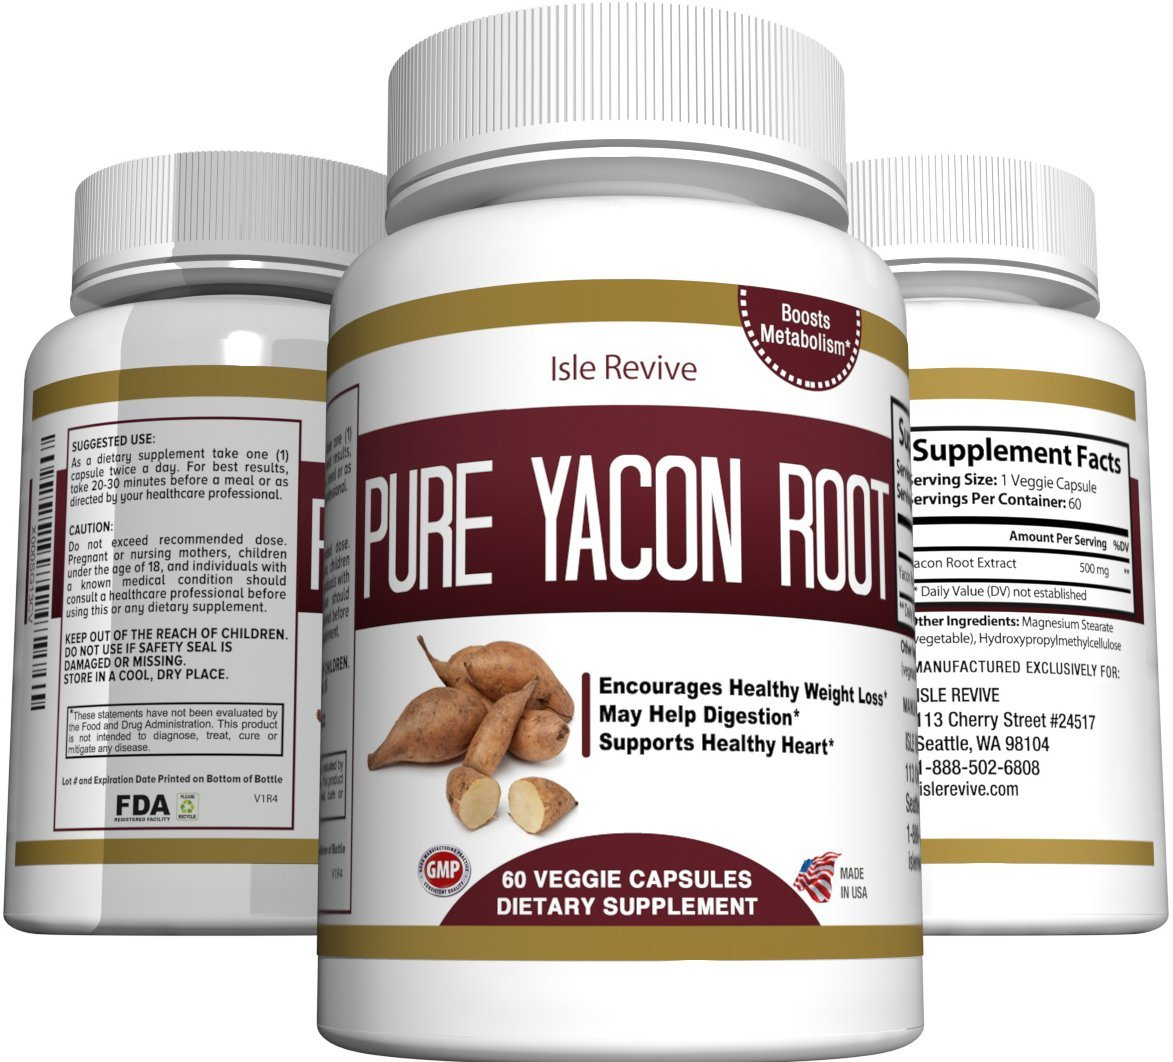 Pure Yacon Root Powder Extract Capsules - All Natural Prebiotic Supplement Detox and Cleanse, Weight Loss, Digestion, Boosts Metabolism, and Suppresses Appetite - 60 Caps - 30 Day Supply - Made in USA